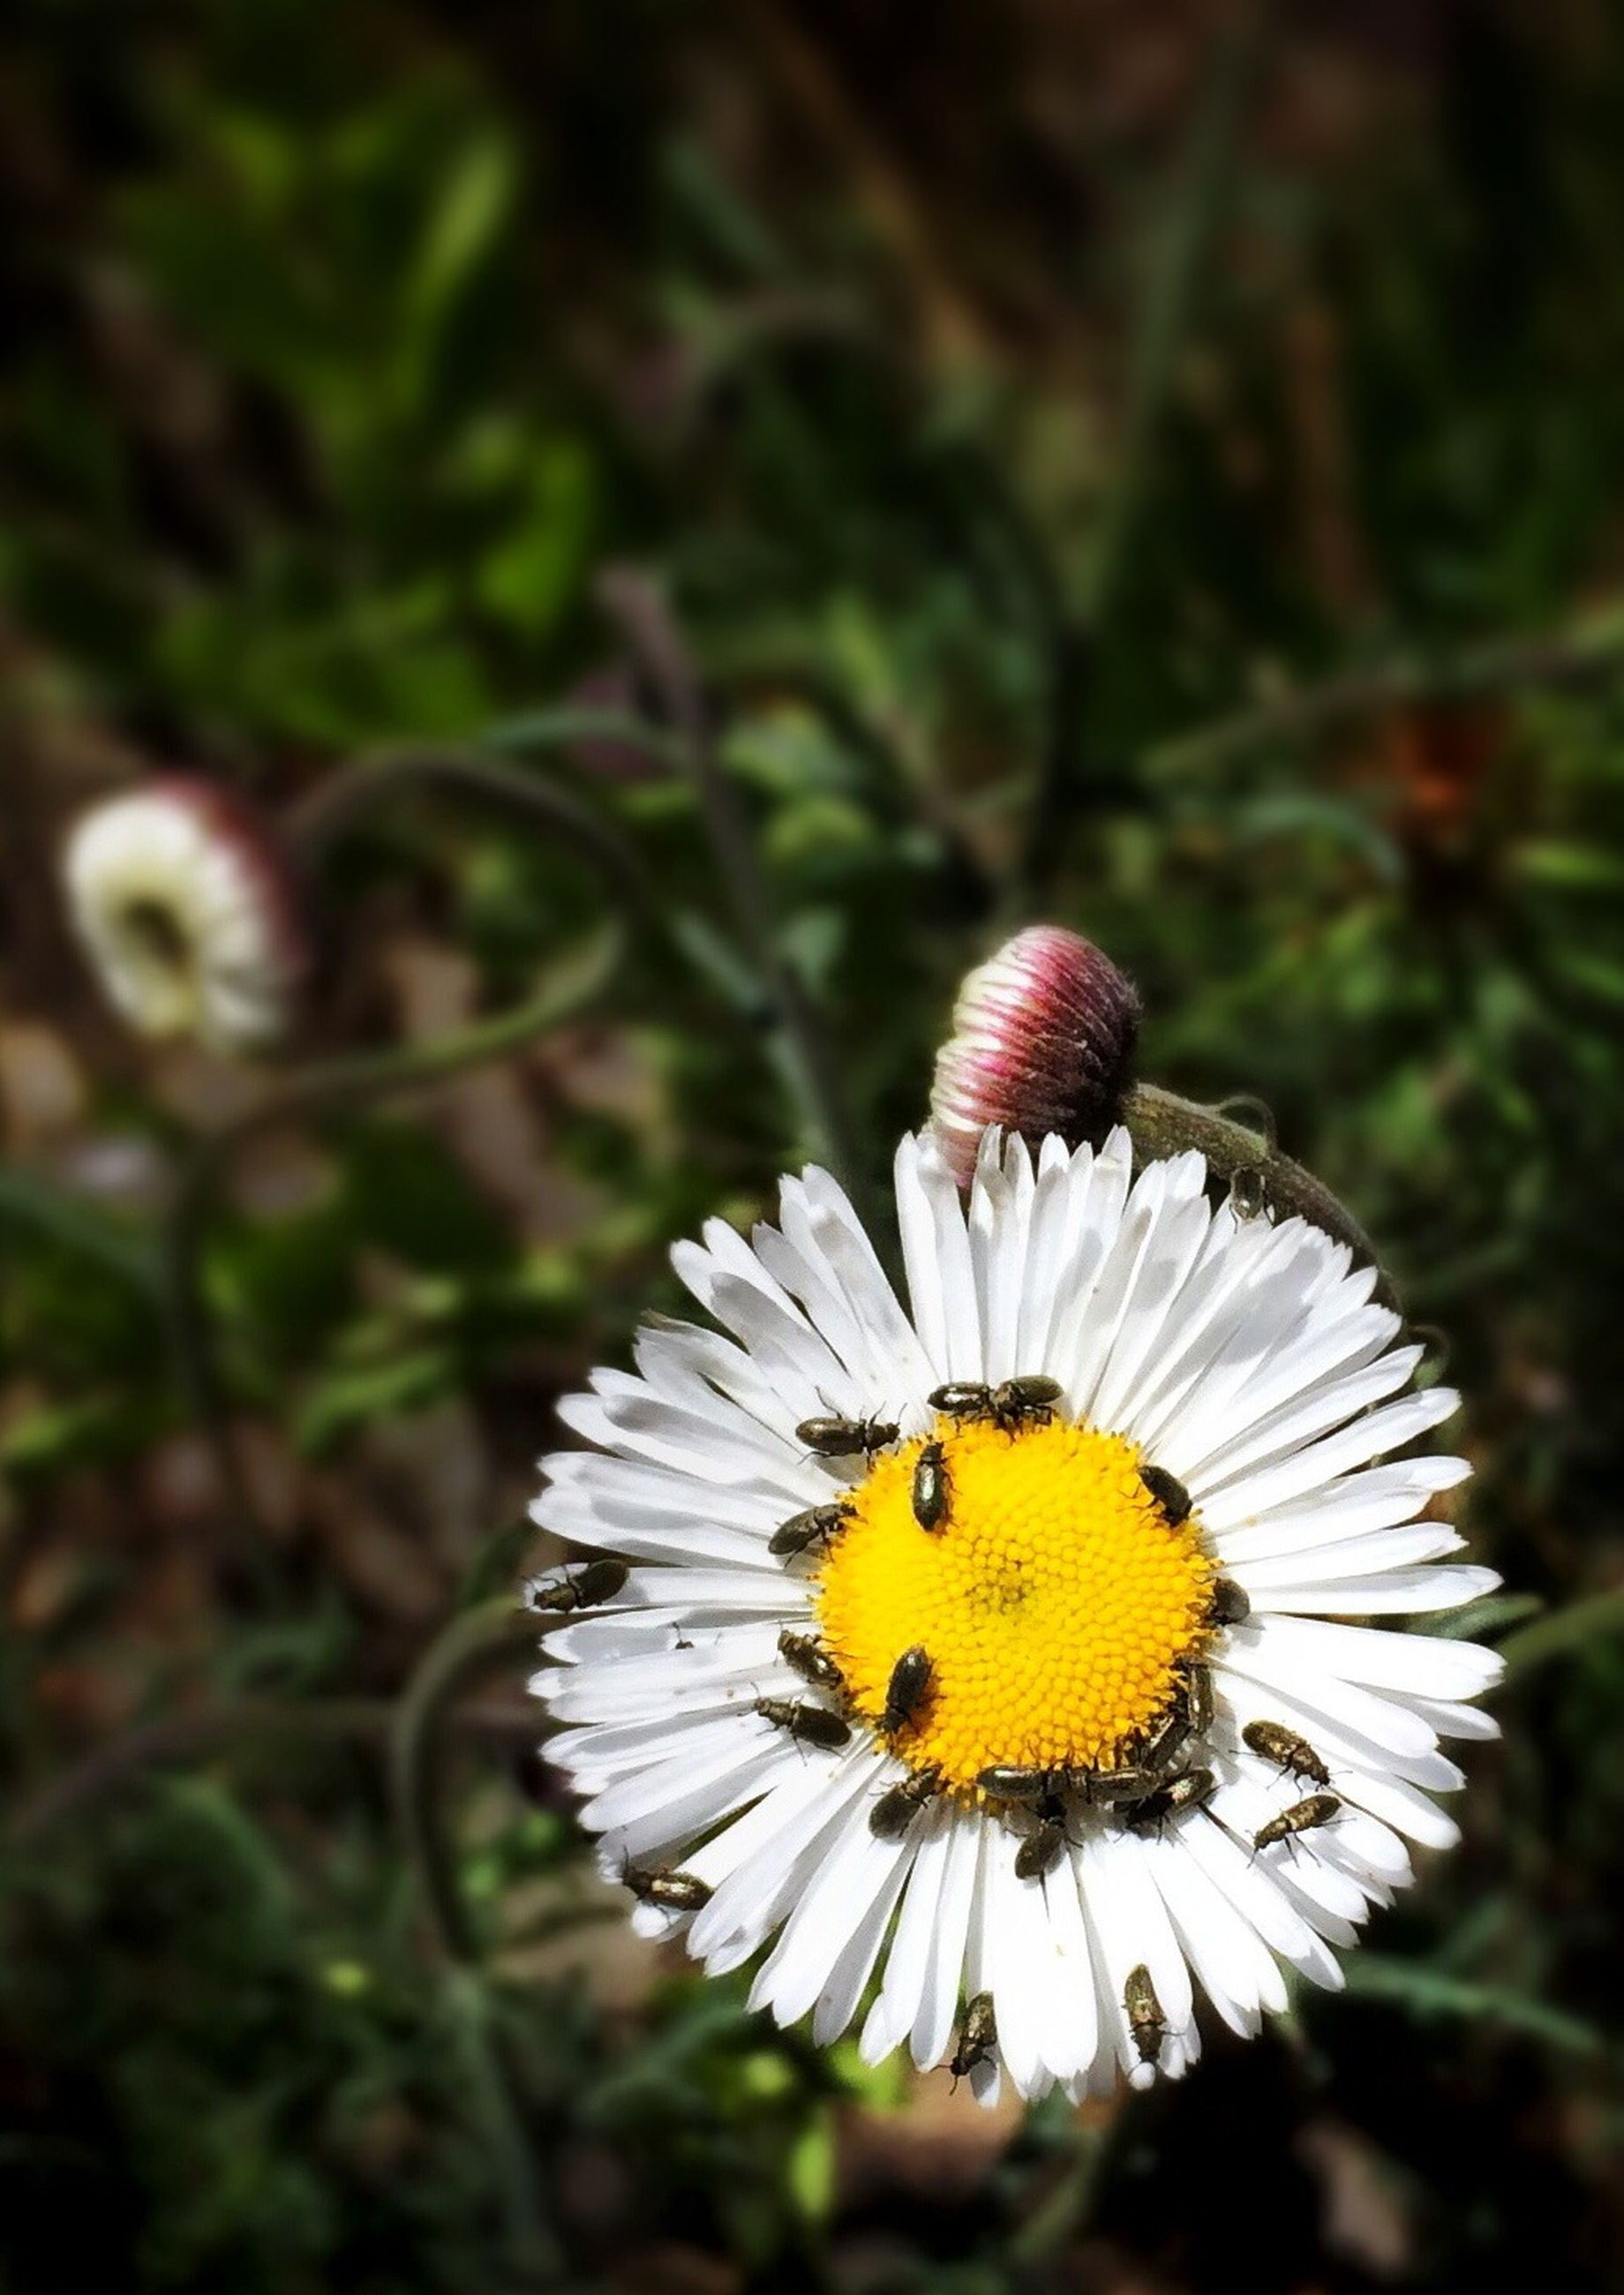 flower, yellow, insect, animals in the wild, petal, animal themes, one animal, flower head, fragility, freshness, wildlife, pollination, focus on foreground, close-up, butterfly - insect, beauty in nature, growth, symbiotic relationship, nature, pollen